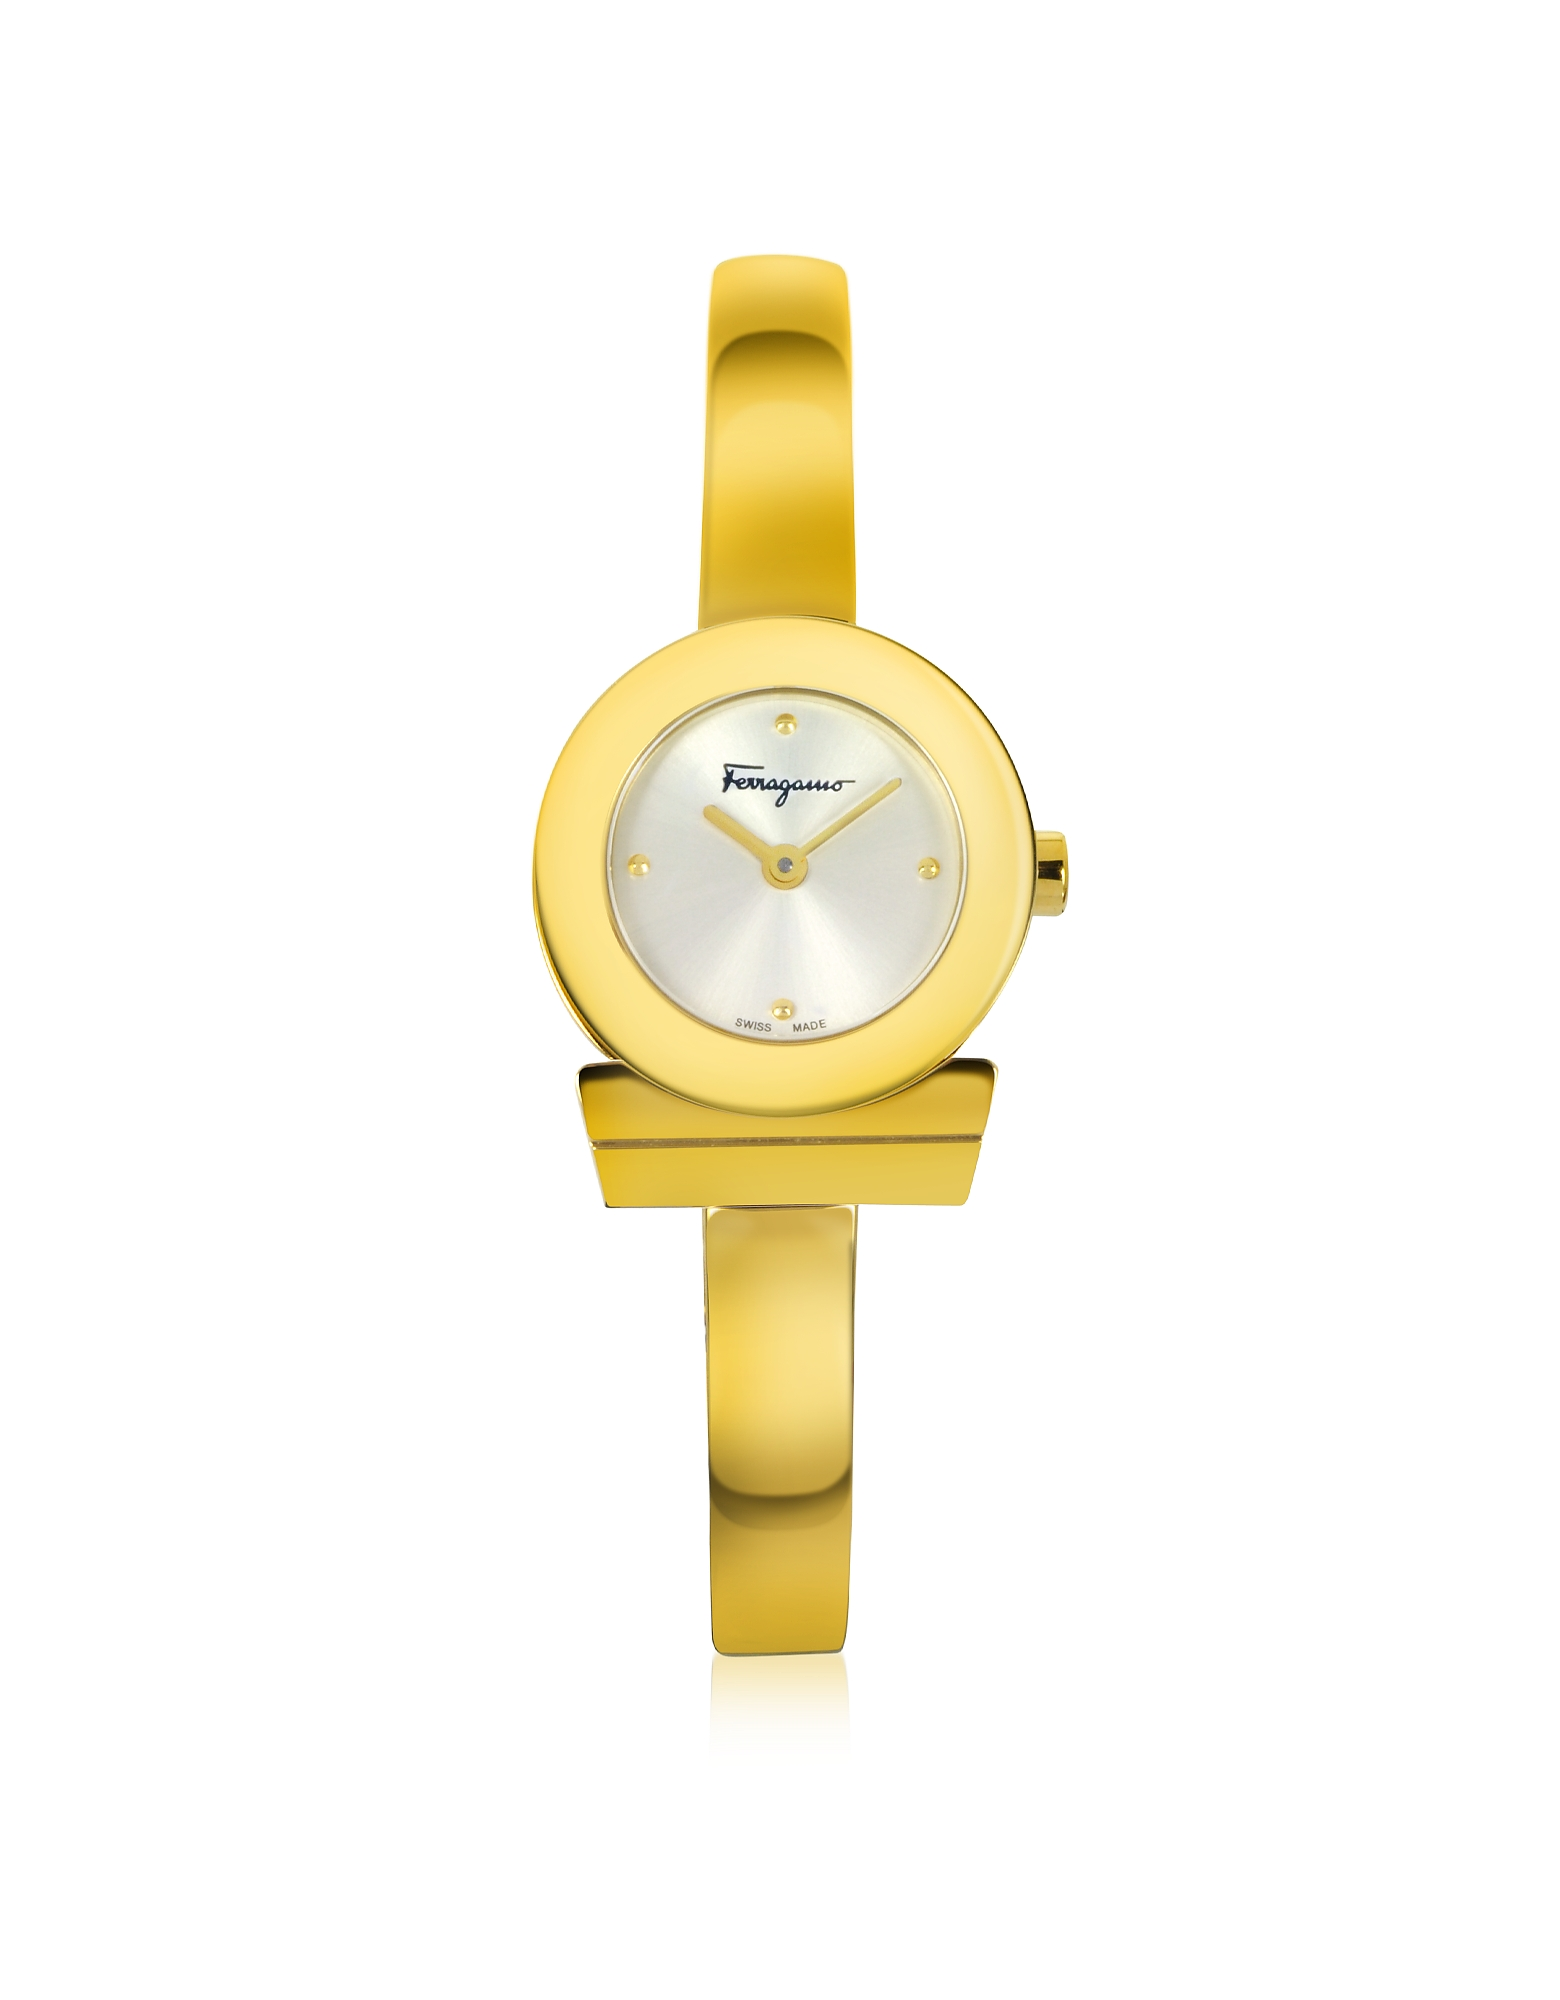 Salvatore Ferragamo Women's Watches, Gancino Gold IP Stainless Steel Women's Watch